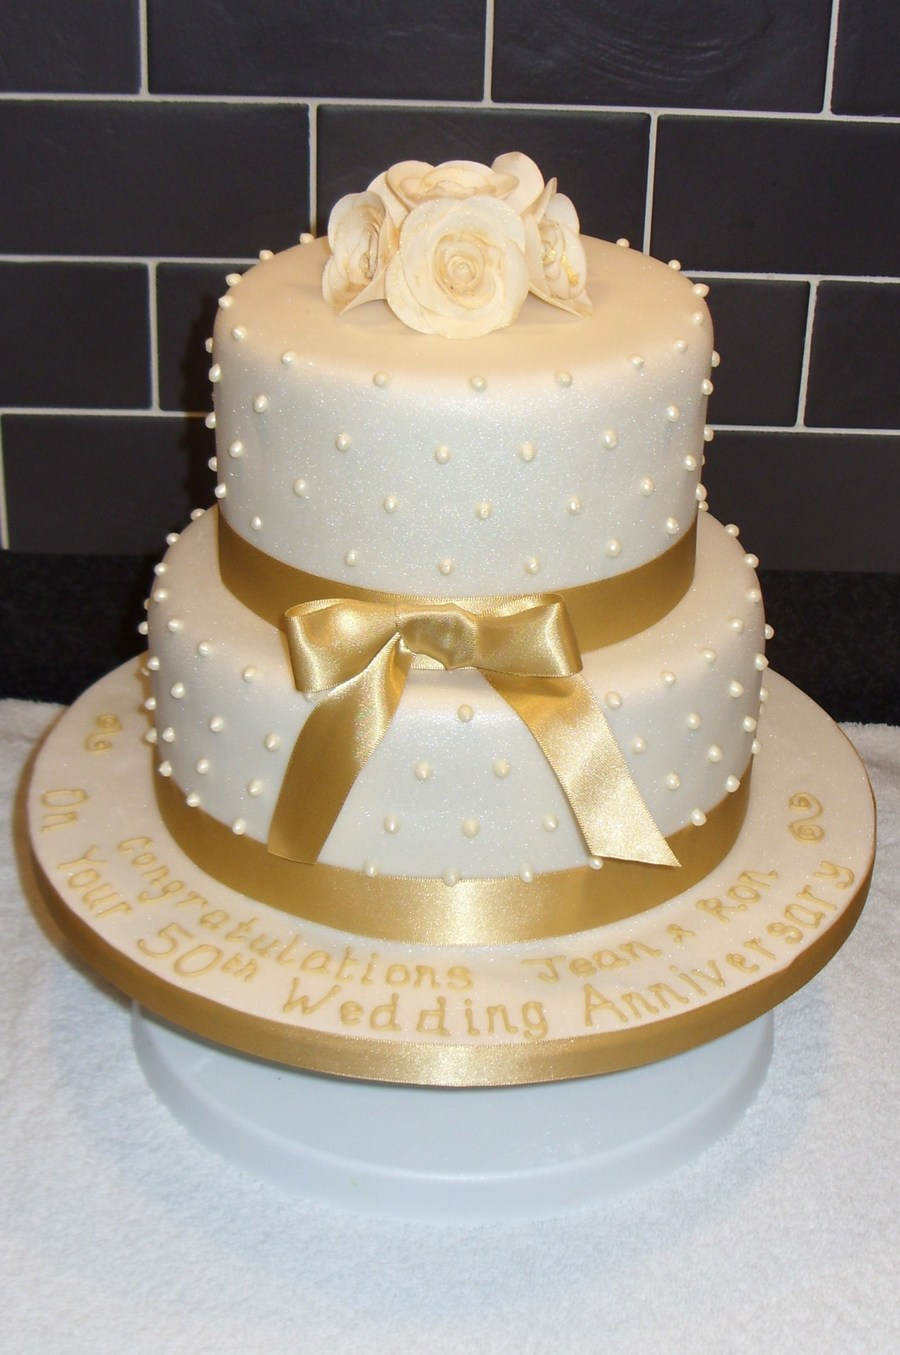 Golden Wedding Anniversary Cake Cakecentral Com